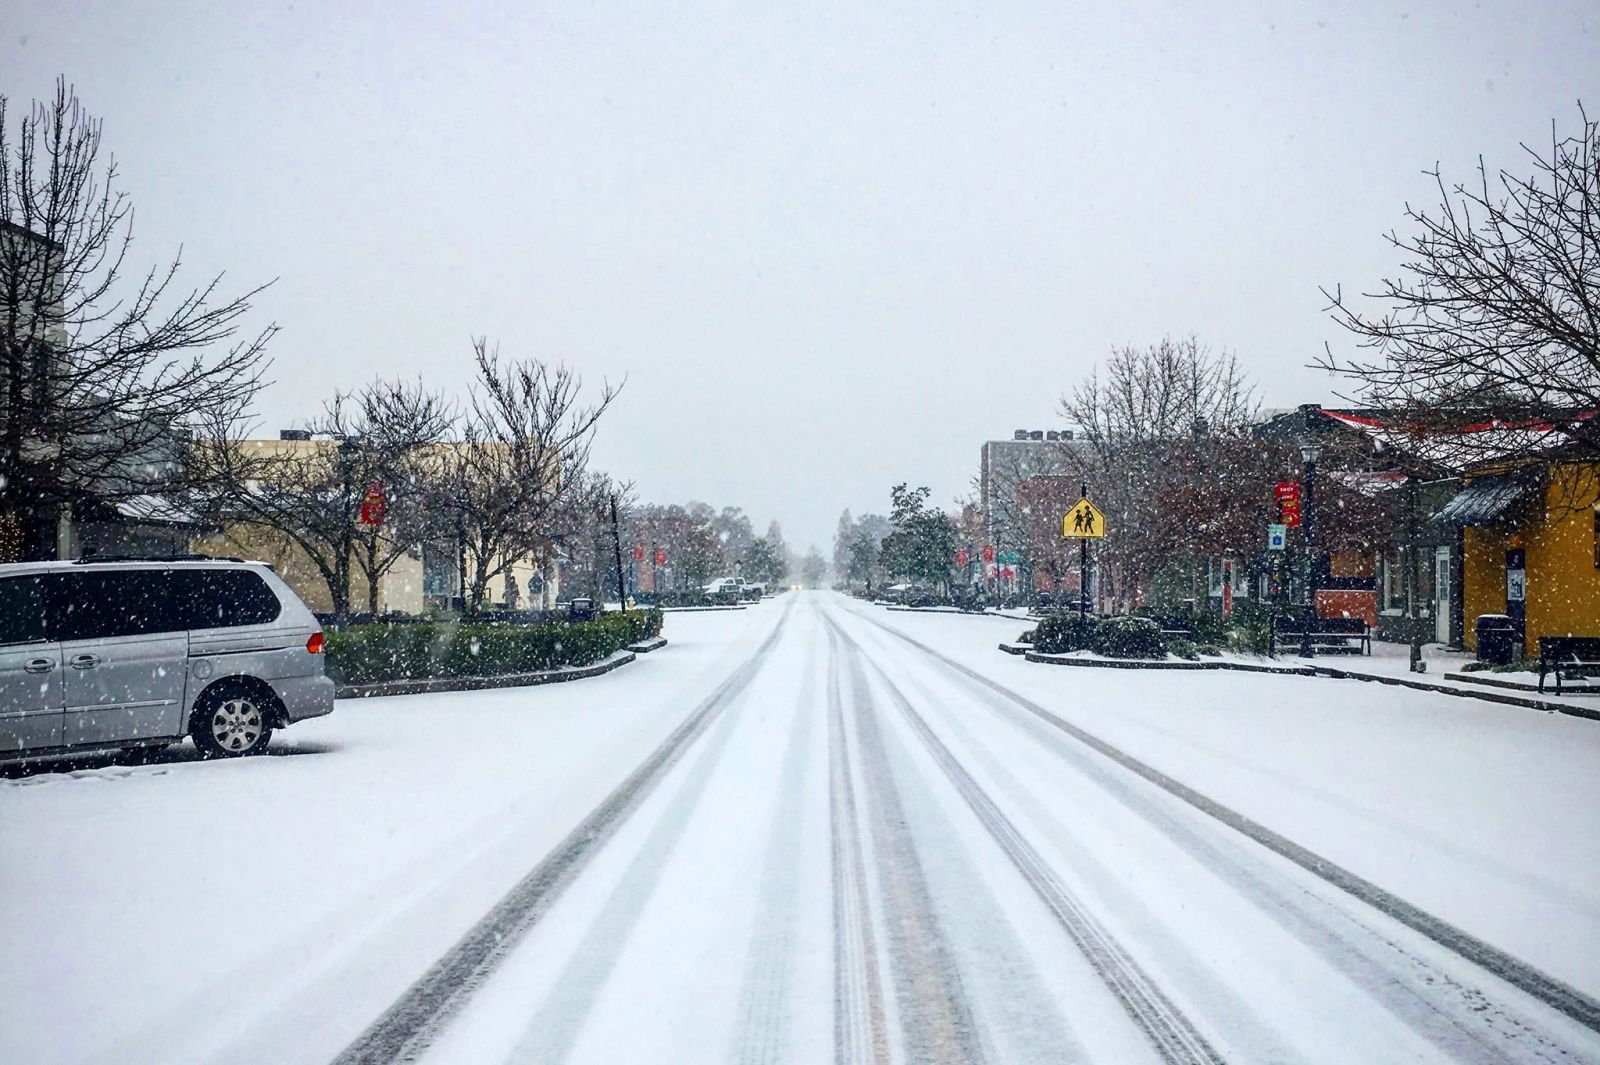 Most businesses in Park Circle were closed as snow and ice accumulated on East Montague Avenue in North Charleston. (Photo/Laura Cannon)